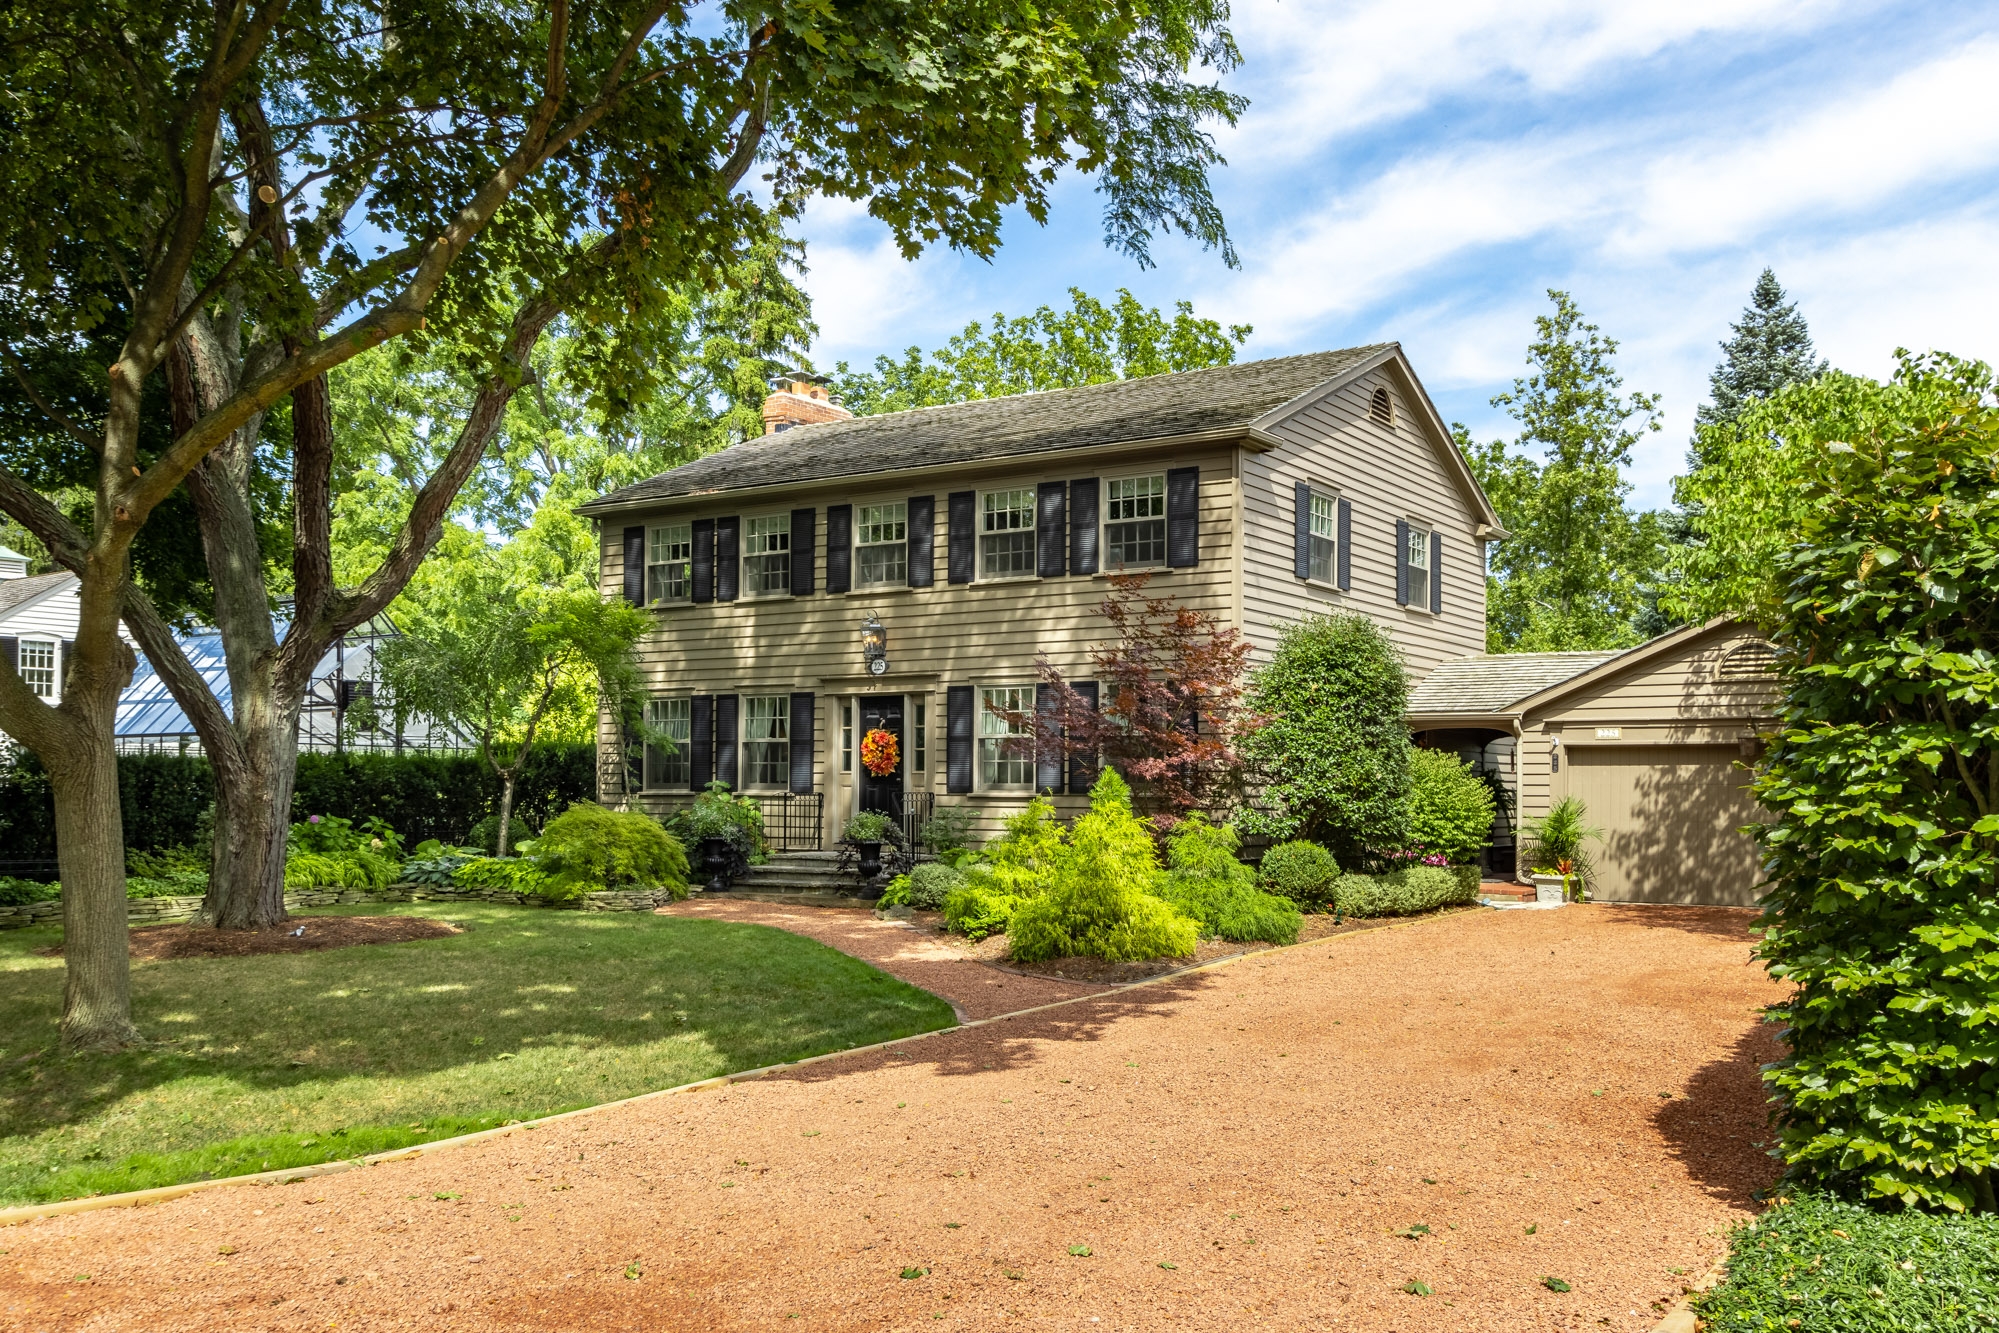 Property image for 225 William Street, NOTL